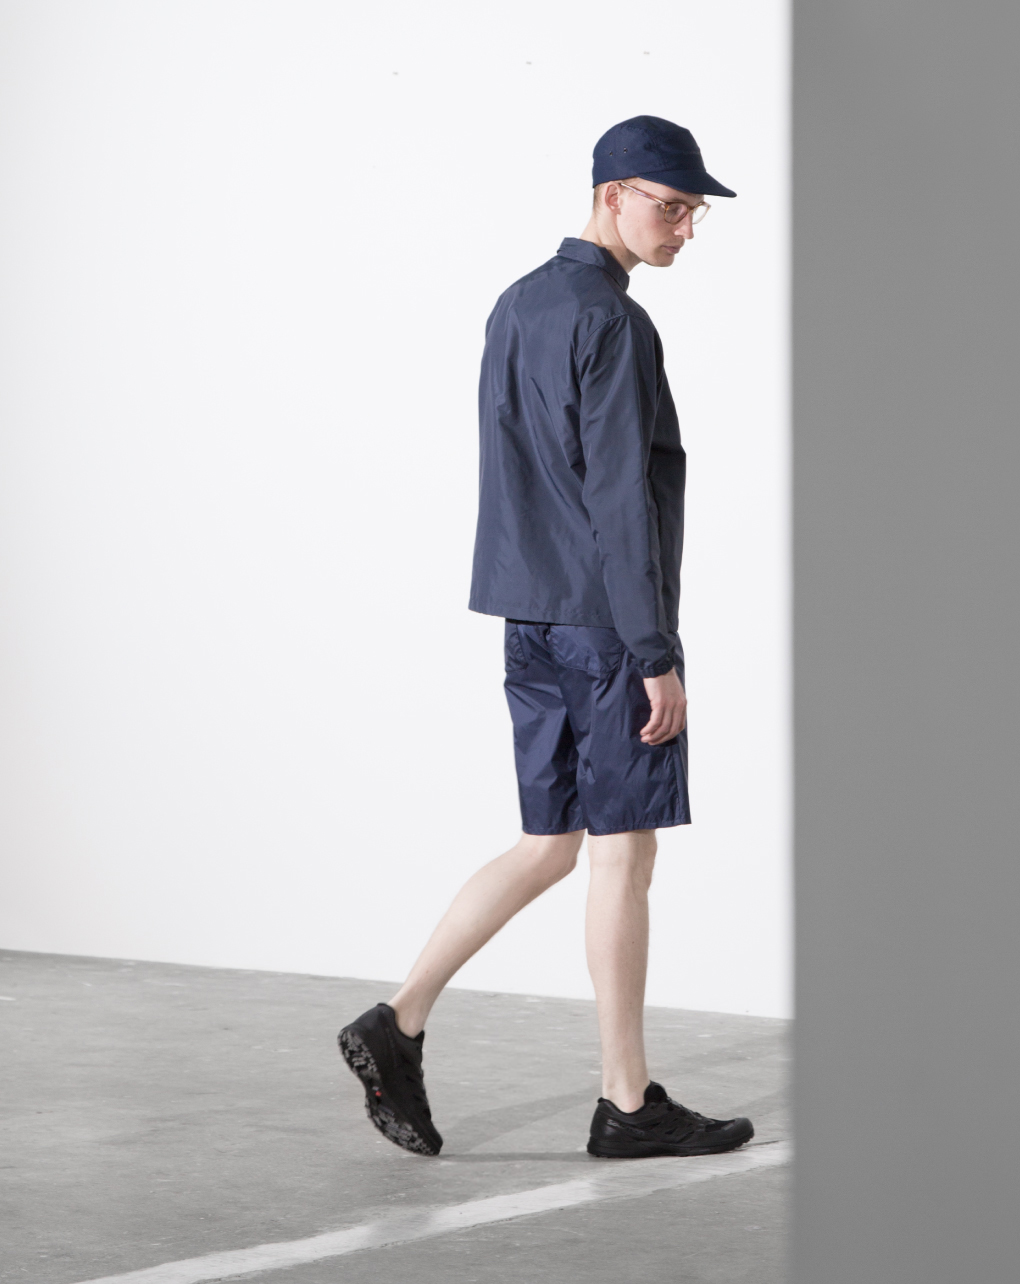 430d1793eb569b Norse Projects sheds Light on their Spring Arrivals